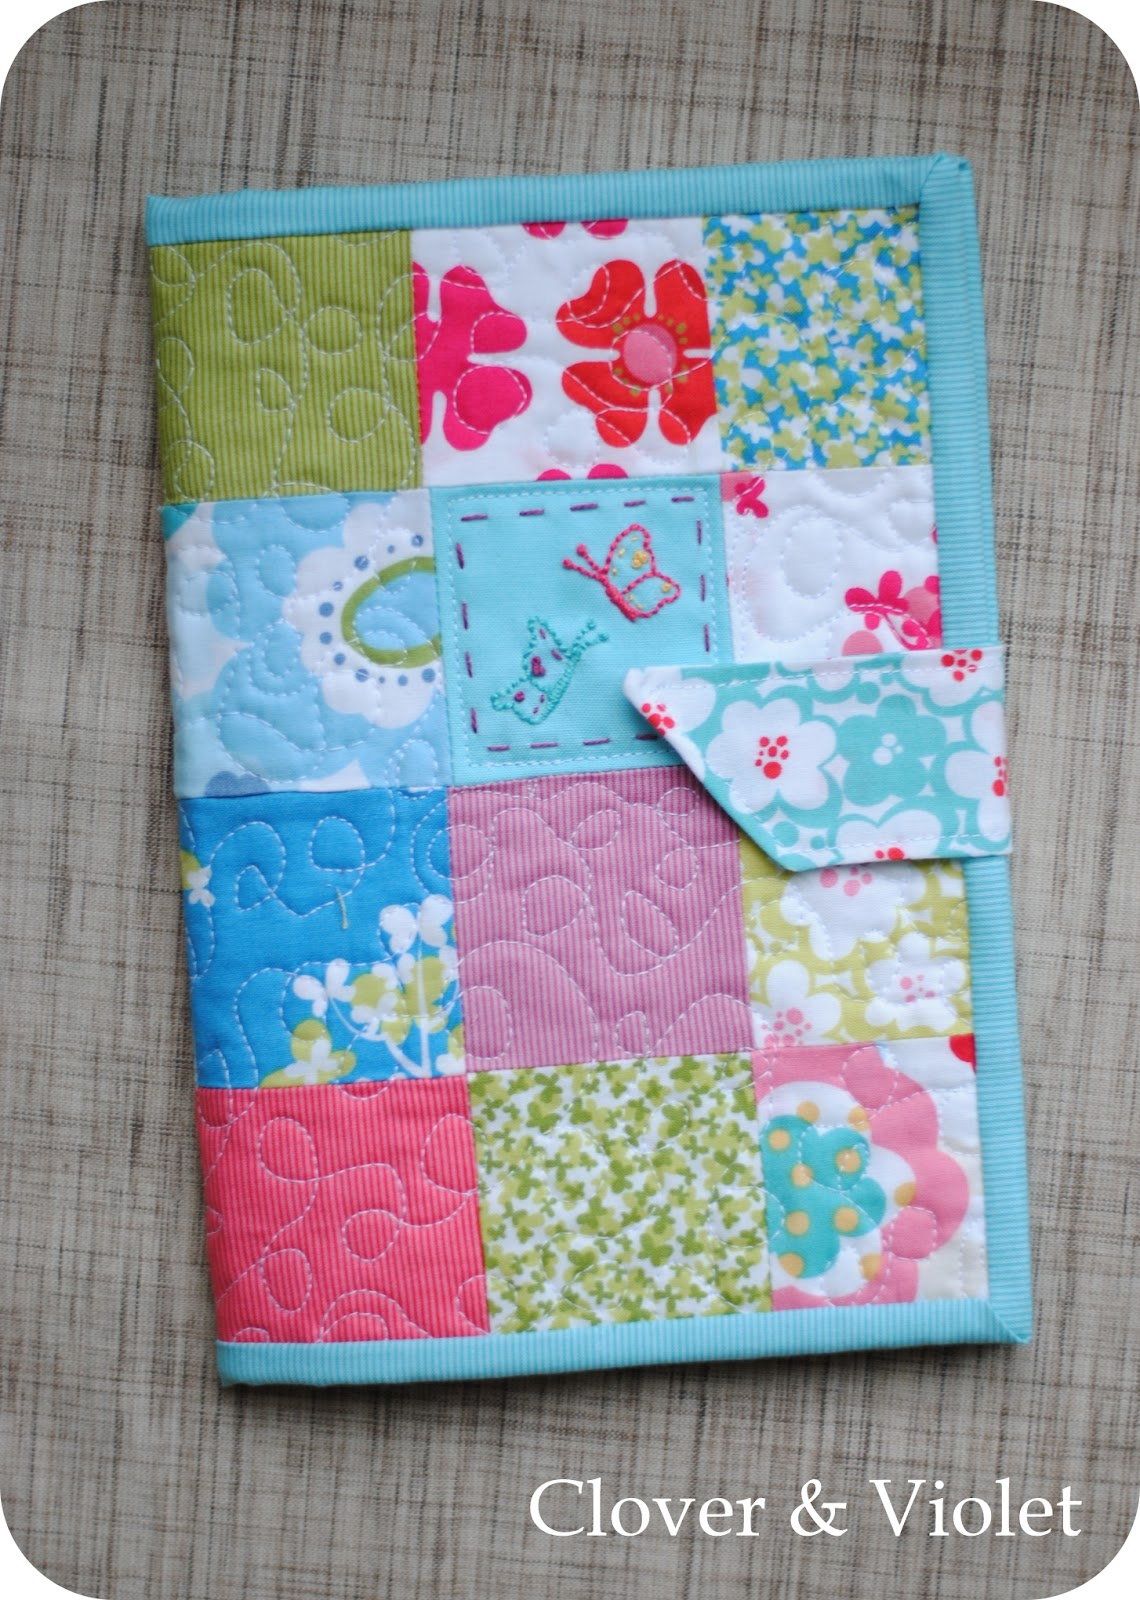 How To Make A Quilted Book Cover ~ Clover violet — kindle keyborad book style cover